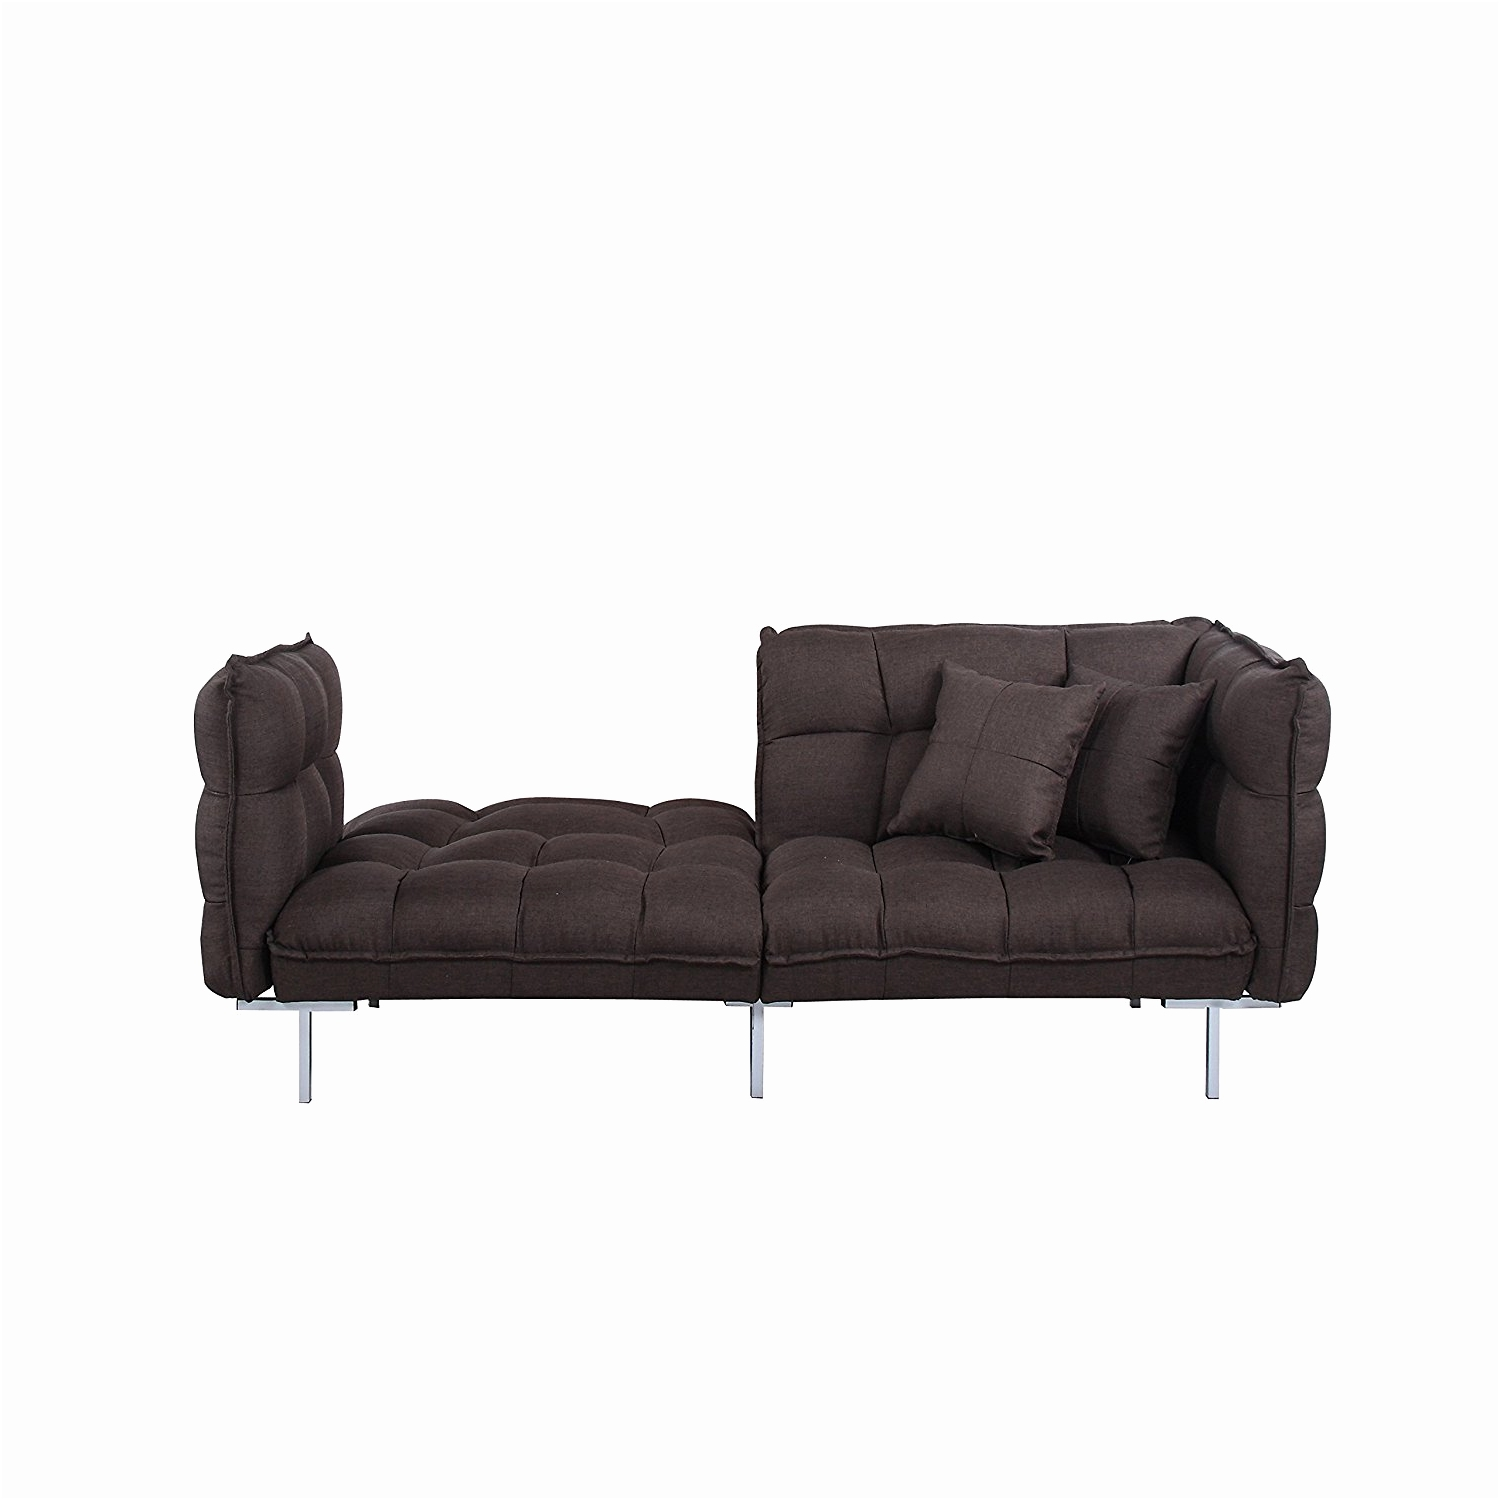 sleeper sofa amazon photo - 9